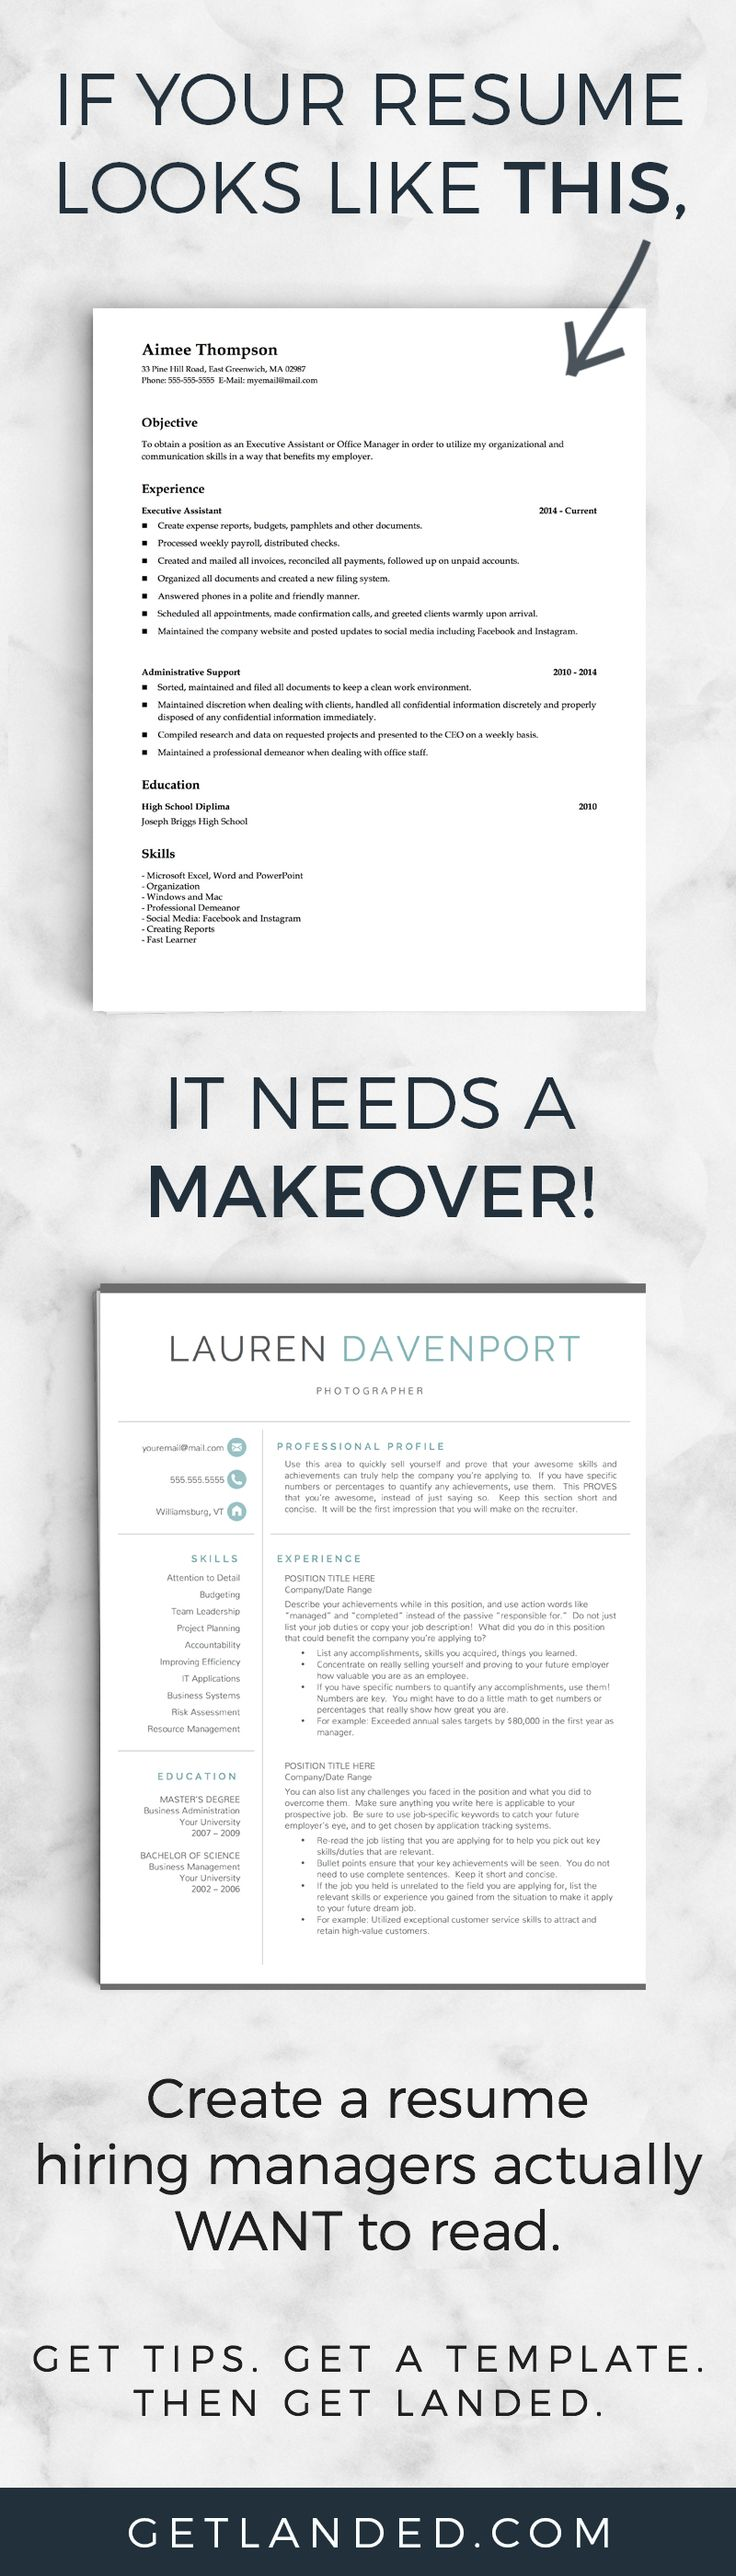 best images about professional resume templates 80% of candidates desperately need a resume makeover get a resume makeover today